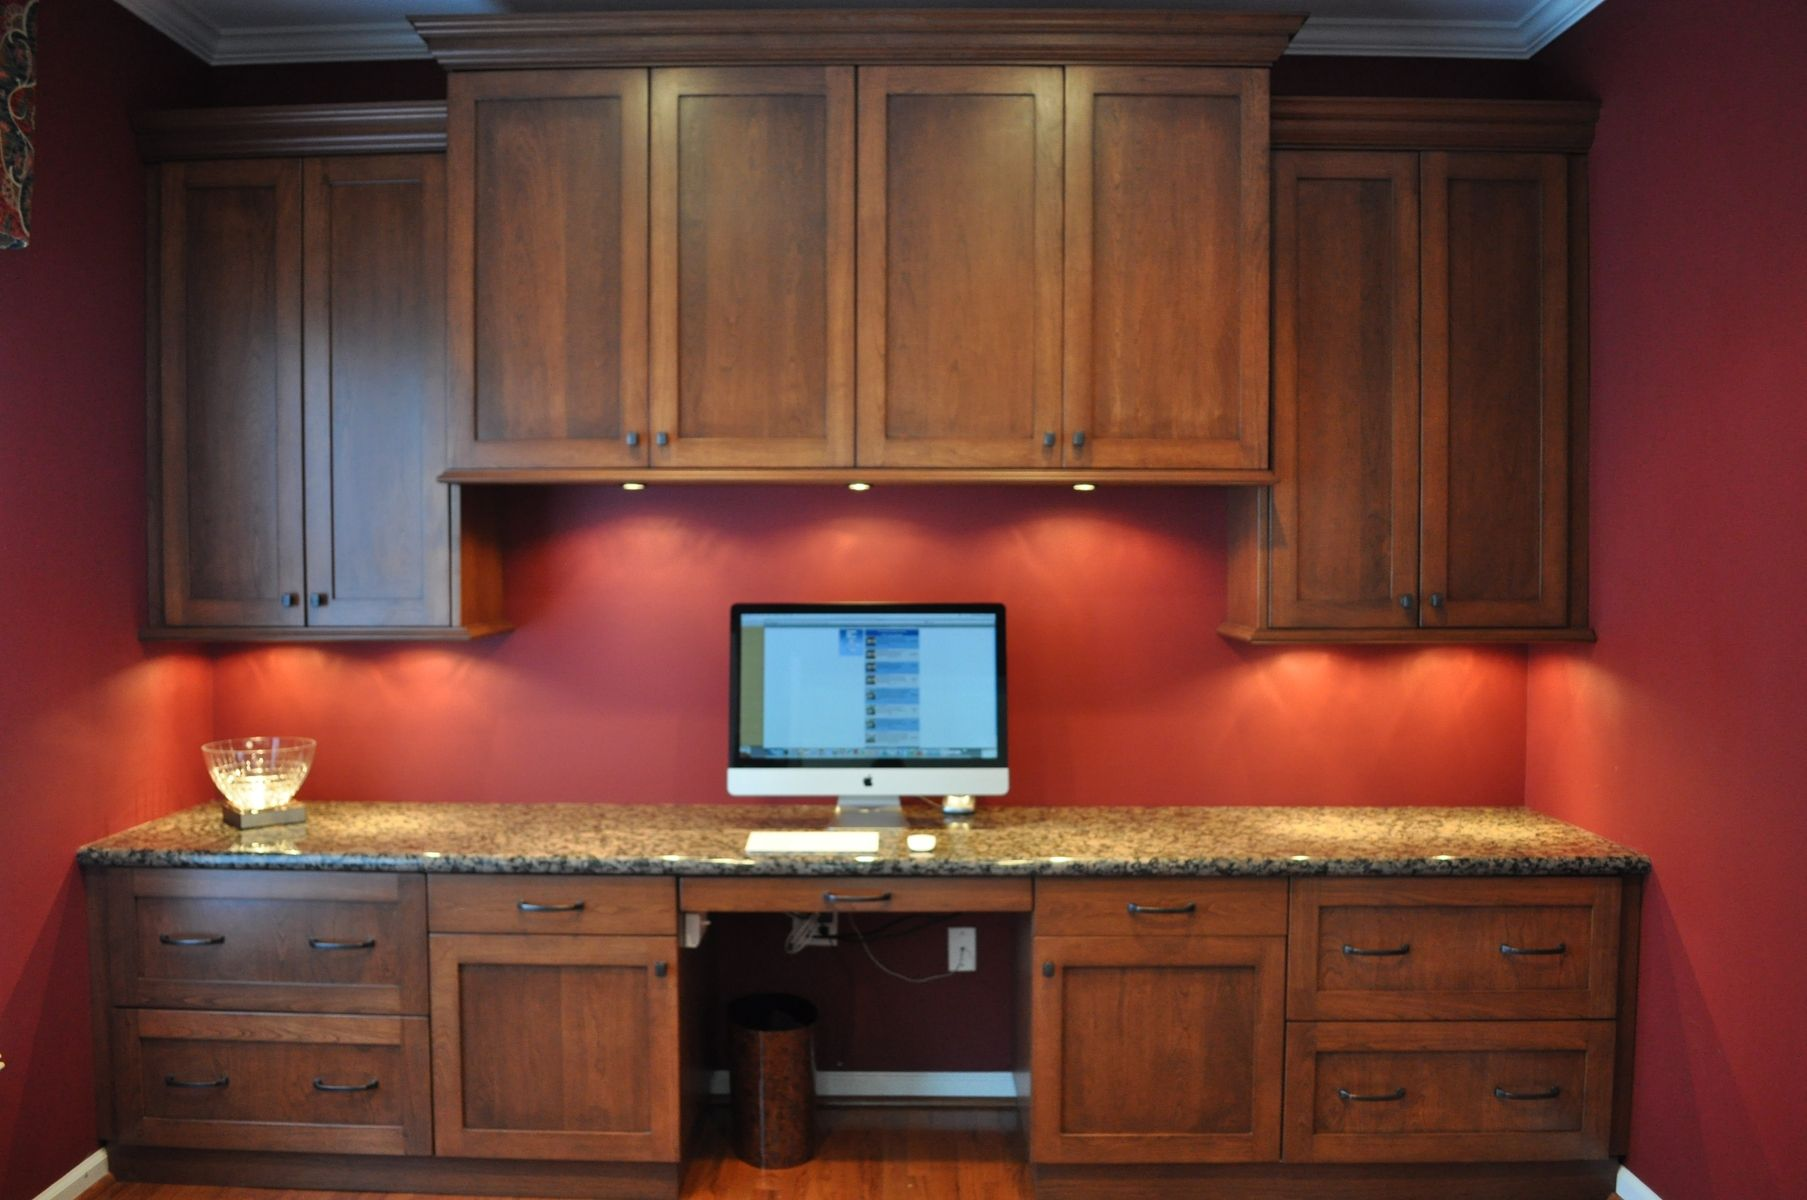 Custom Built Office Desk Desk Unit For A Home Office With A Granite Counter Top In 2020 Cheap Countertops Diy Countertops Custom Countertops